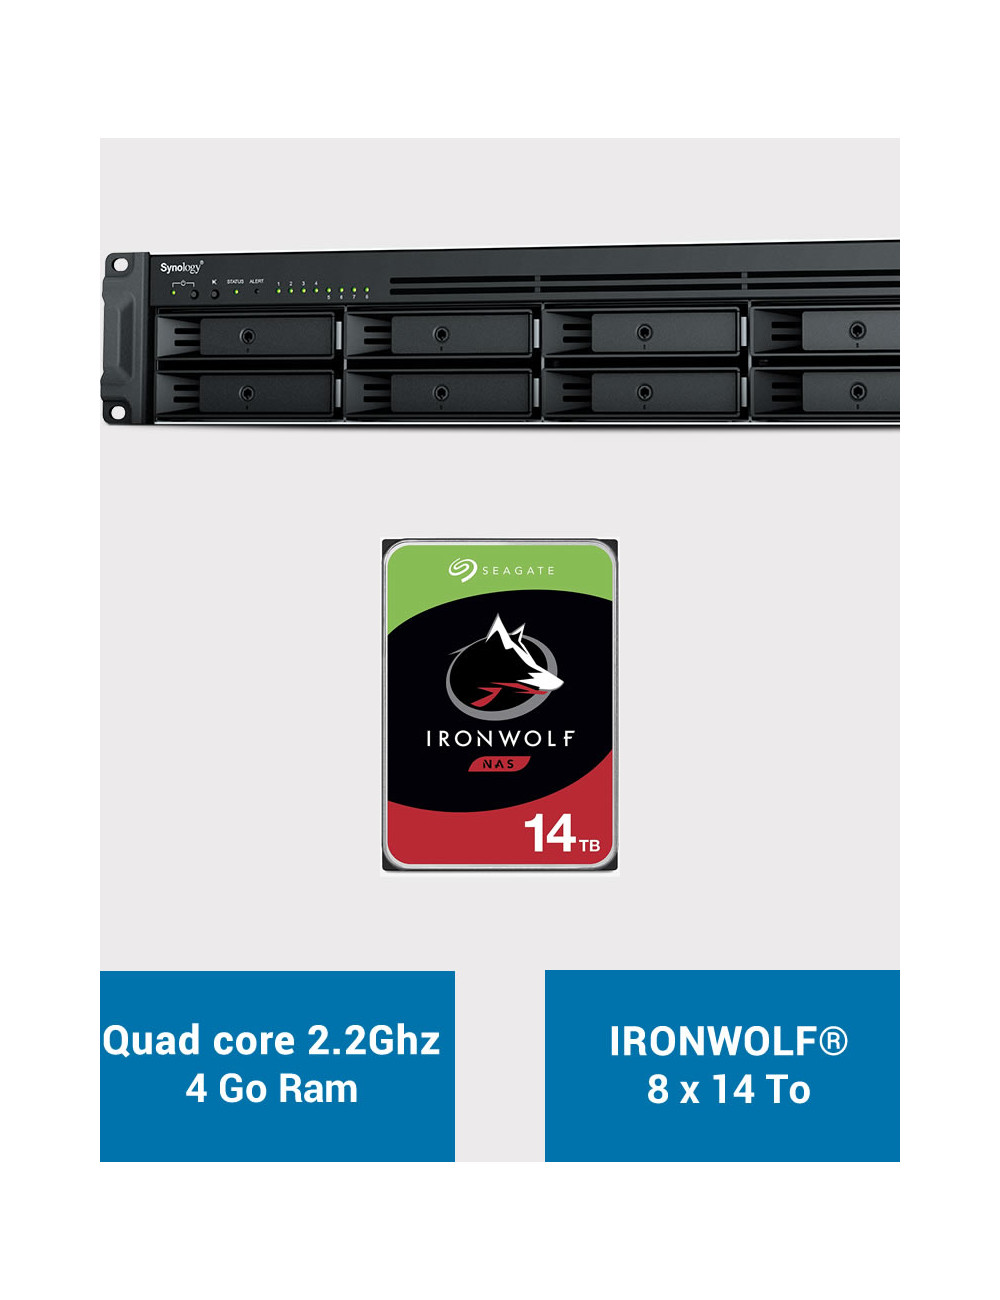 Synology RS1221+ Serveur NAS Rack IRONWOLF 112To (8x14To)